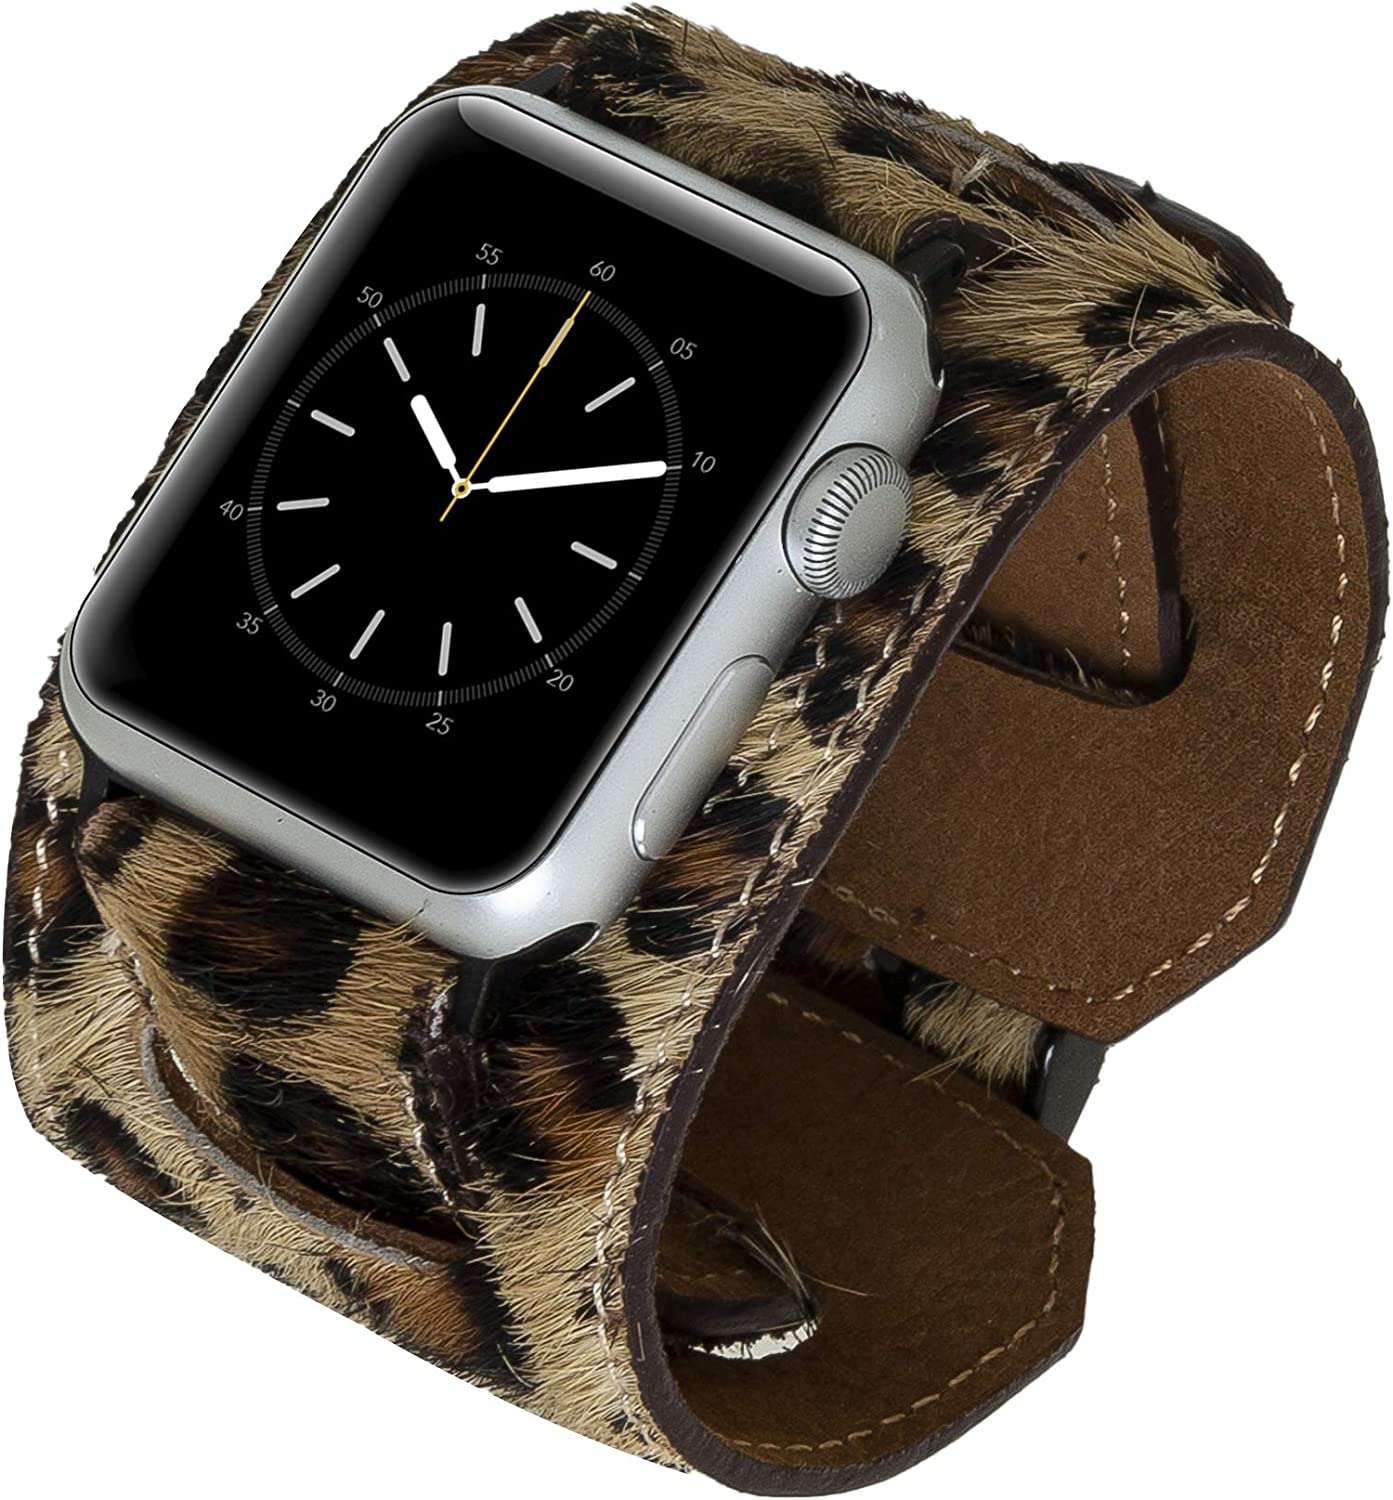 Venito Ancona Cuff Leather Watch Band Compatible with Apple Watch iwatch Series 1,2,3,4,5,6, and SE (Furry Leopard w/Black Connector&Clasp, 38mm-40mm)